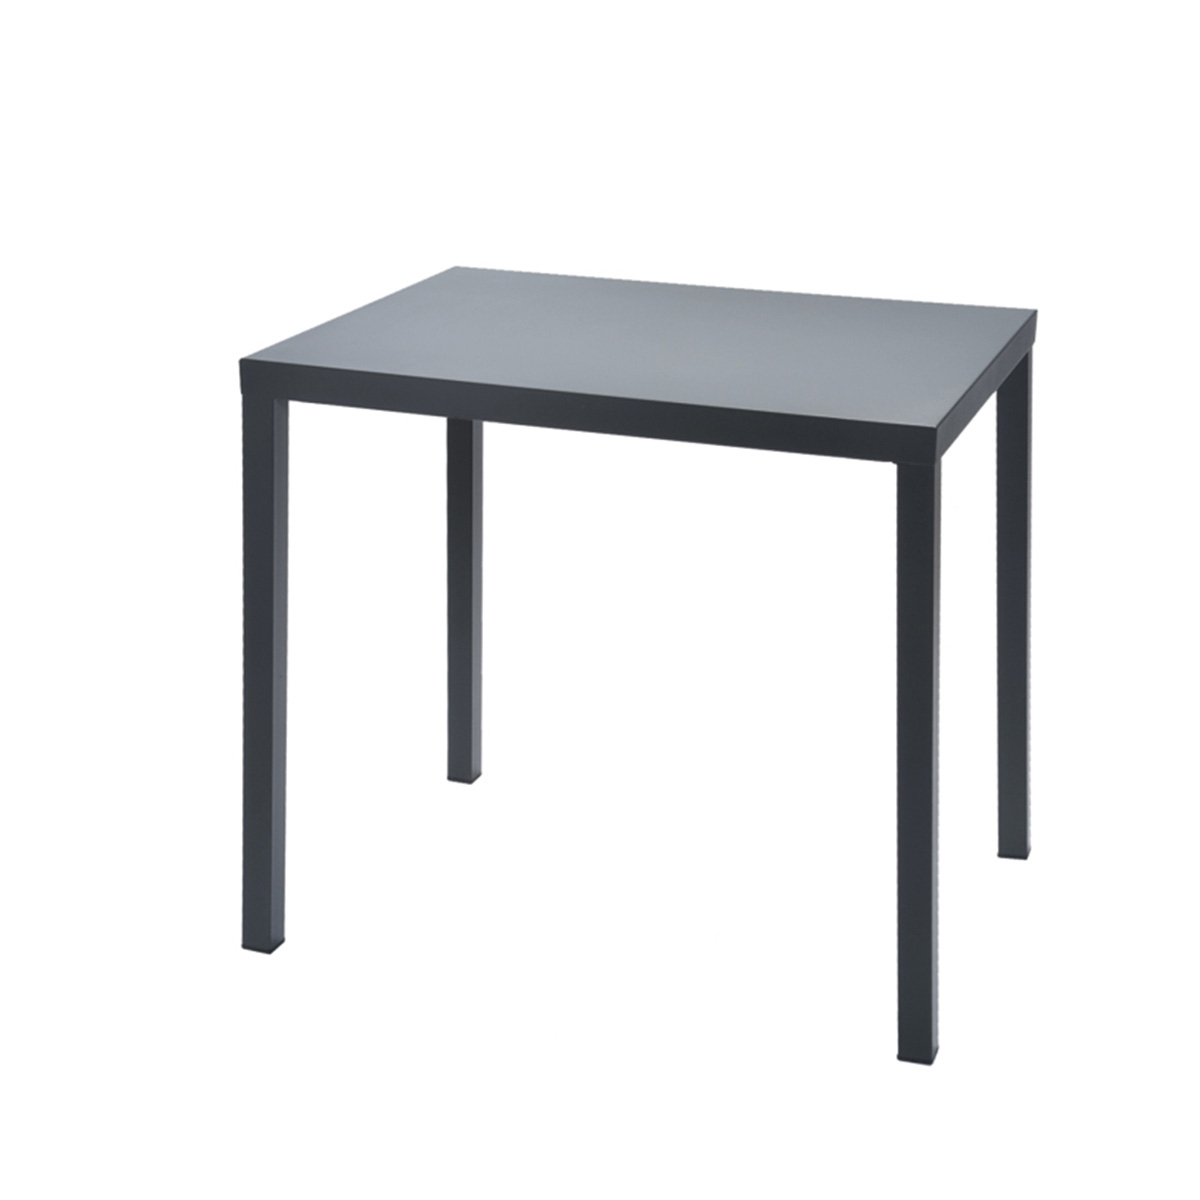 Table rd italia dorio 80x80 cm tables manger design rd italia - Table de jardin design italien ...